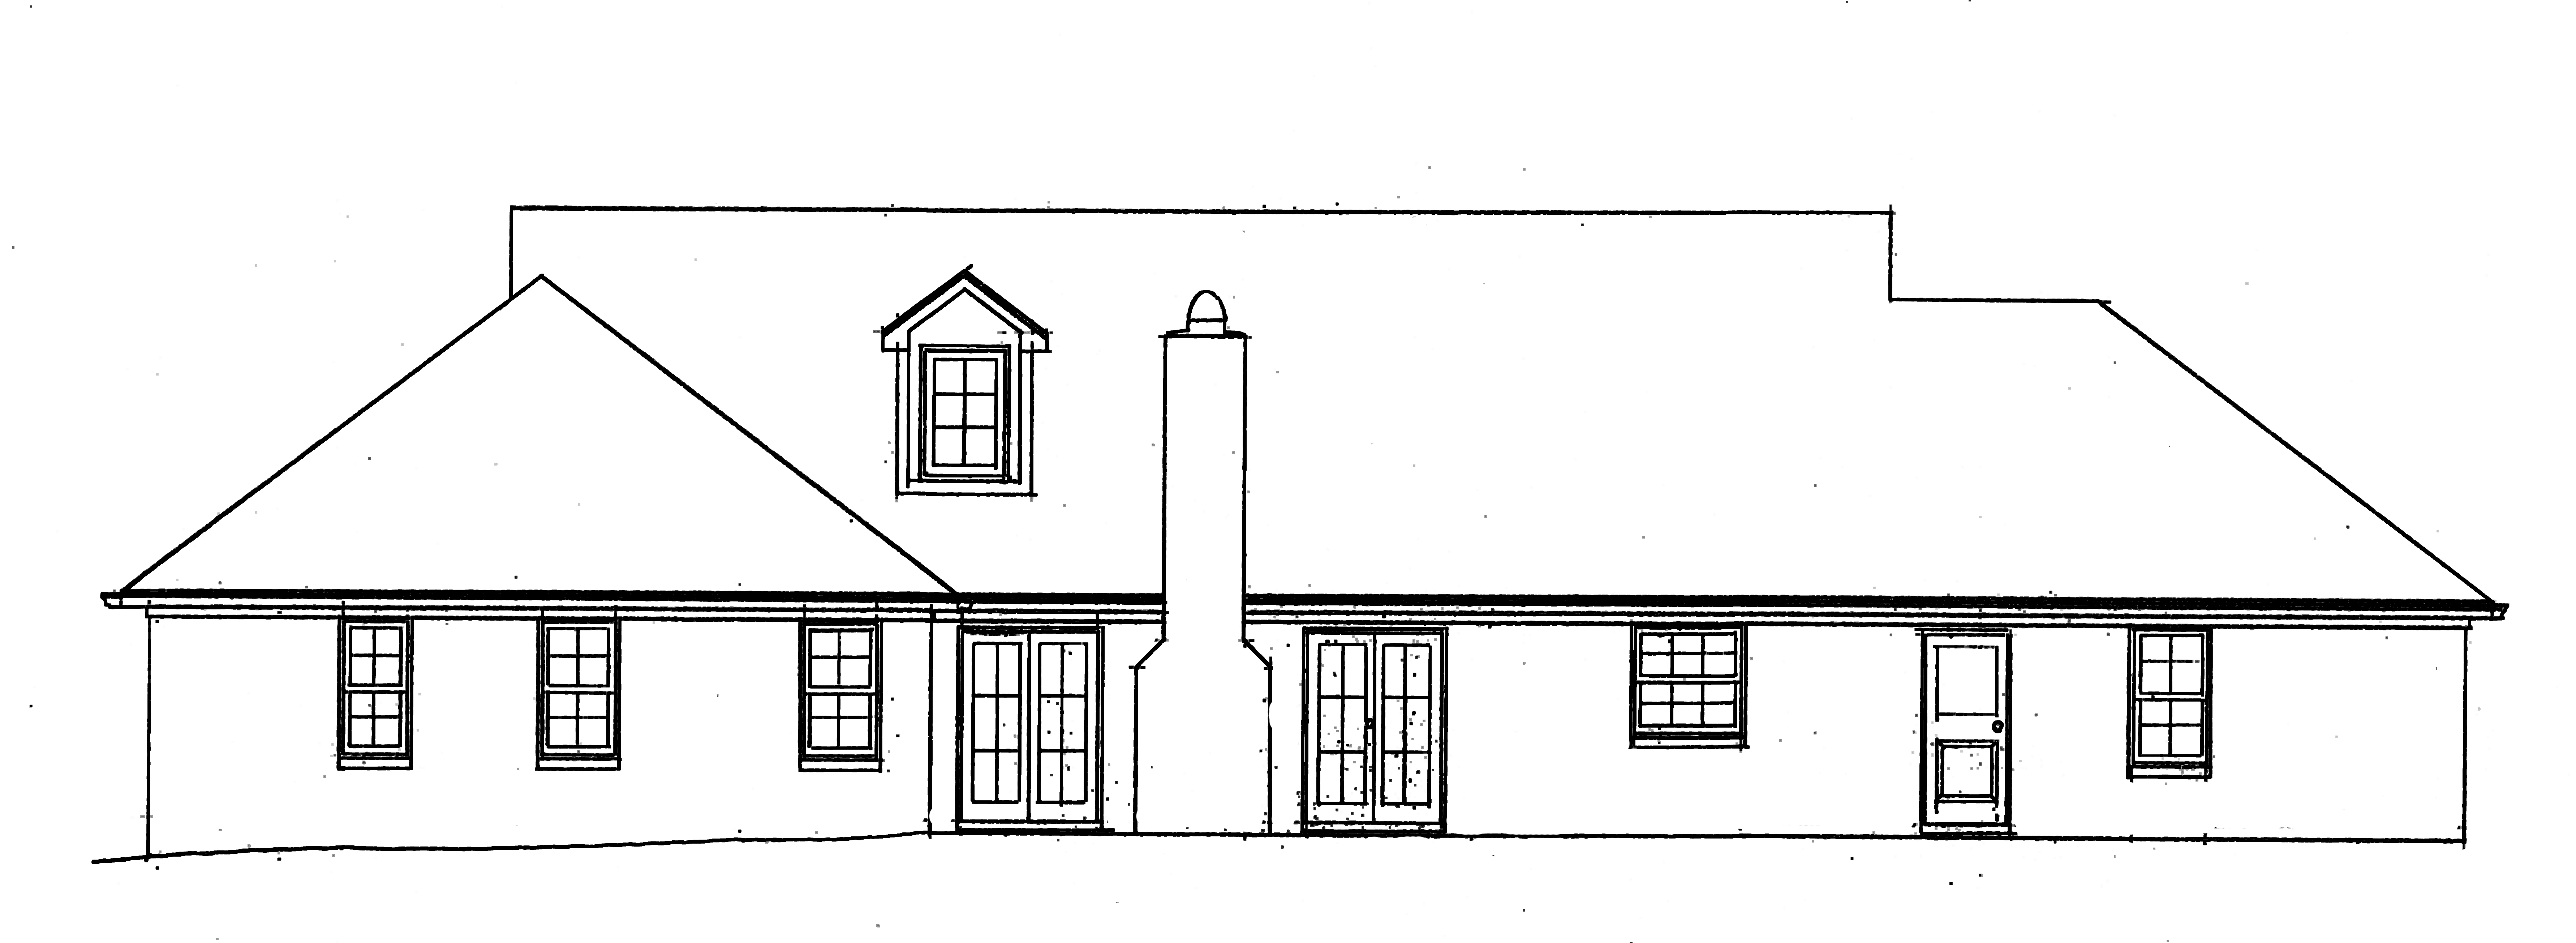 house plans new construction home floor plan Greenwood